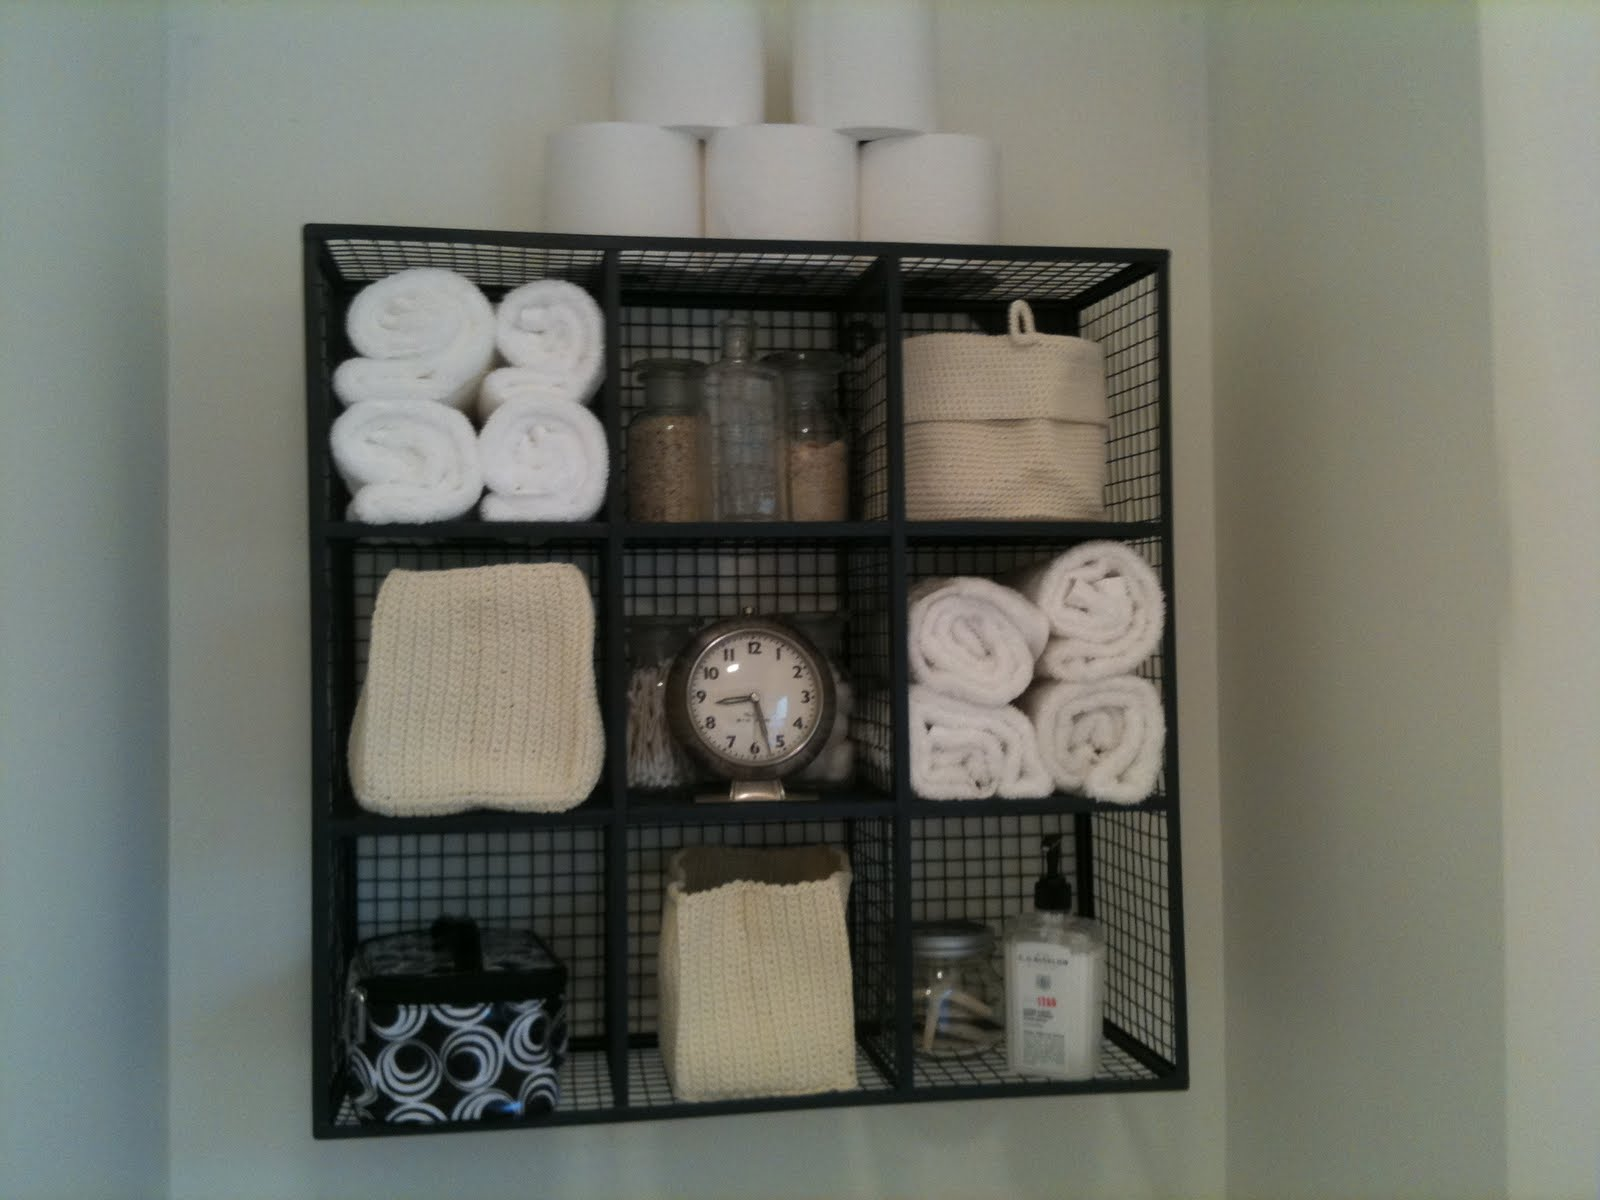 simple ladder shelf looks amazing over the toilet use it to hang a